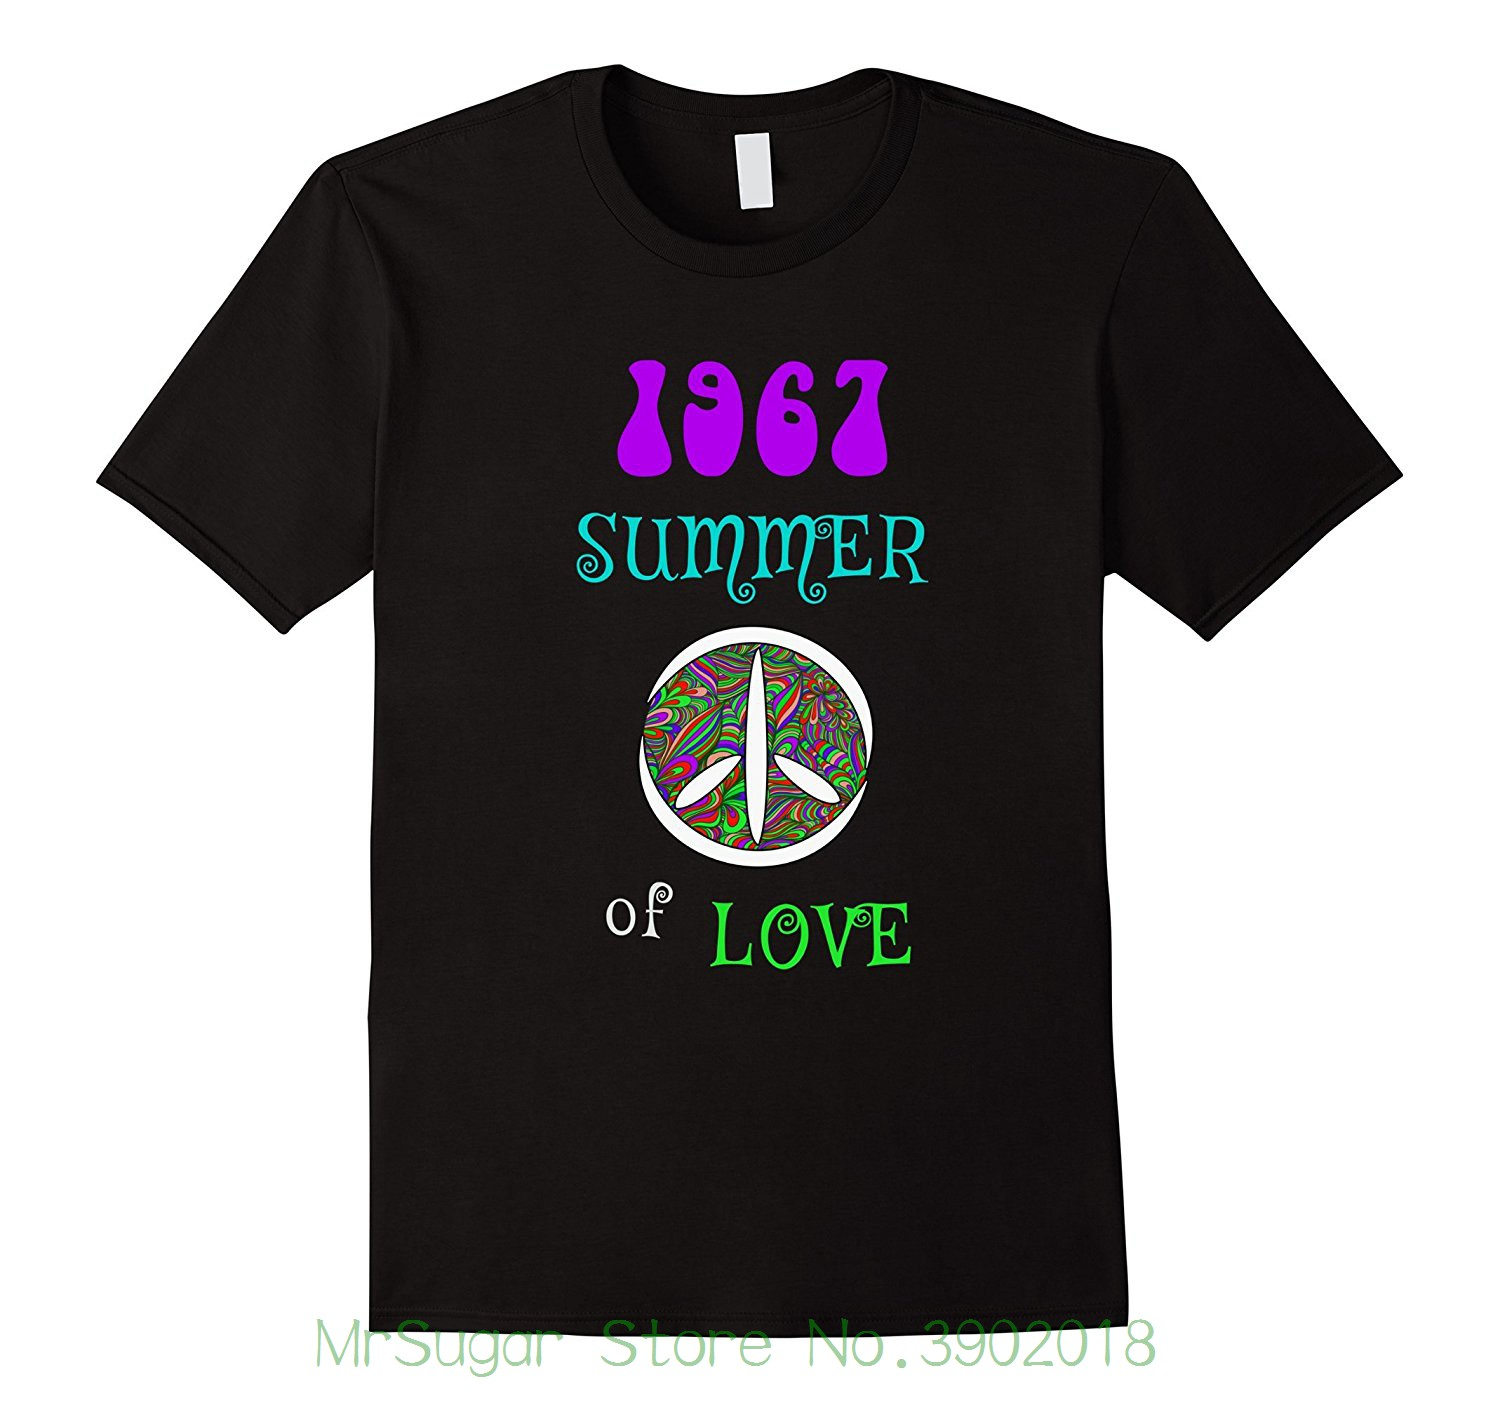 1967 Summer Of Love Hippie Peace Sign T-shirt Printed Summer Style Tees Male Harajuku Top Fitness Brand Clothing